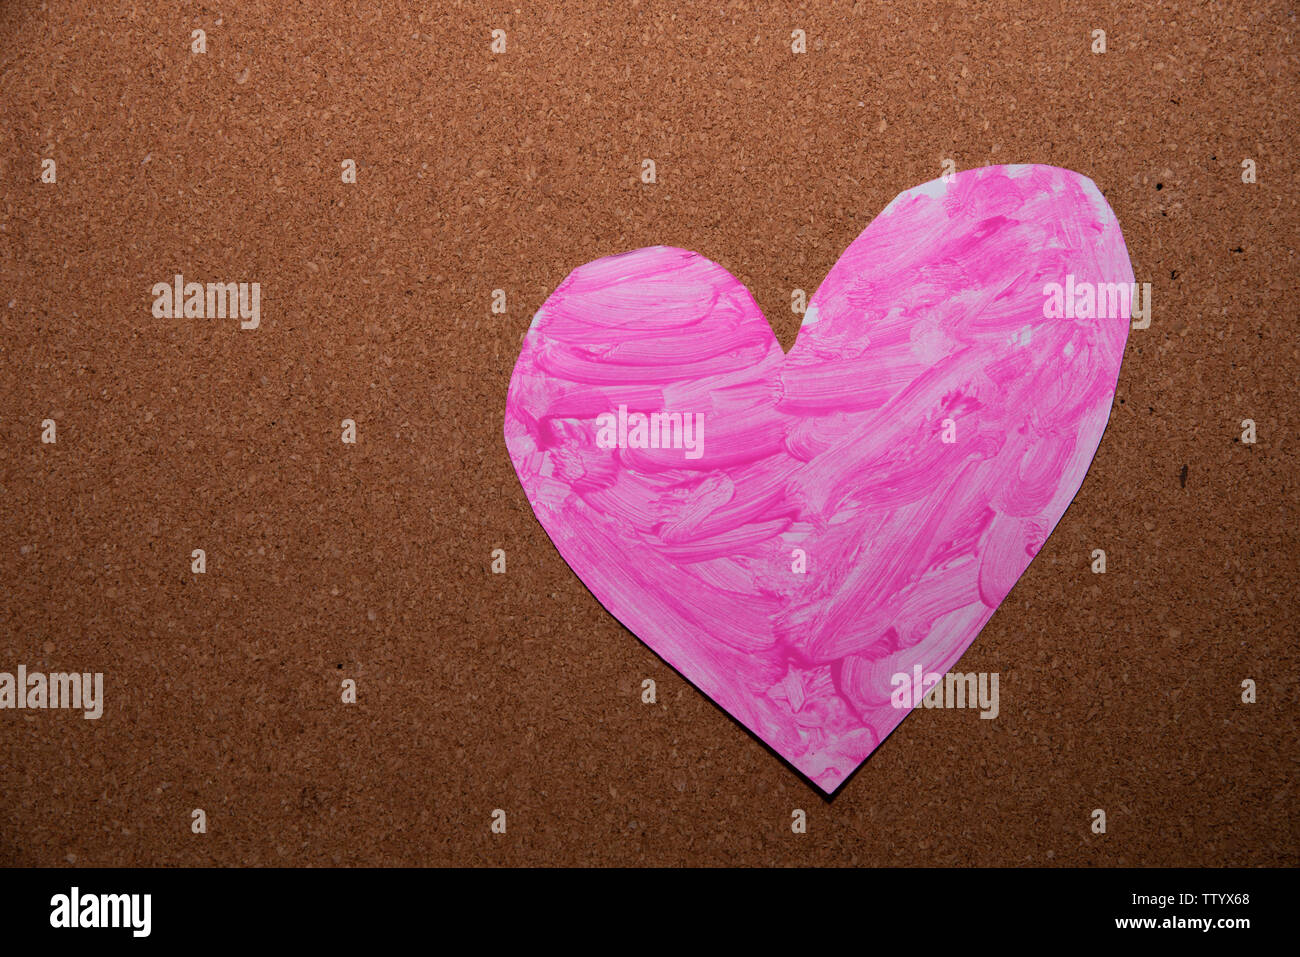 love heart symbol painted pink on a cork board - Stock Image